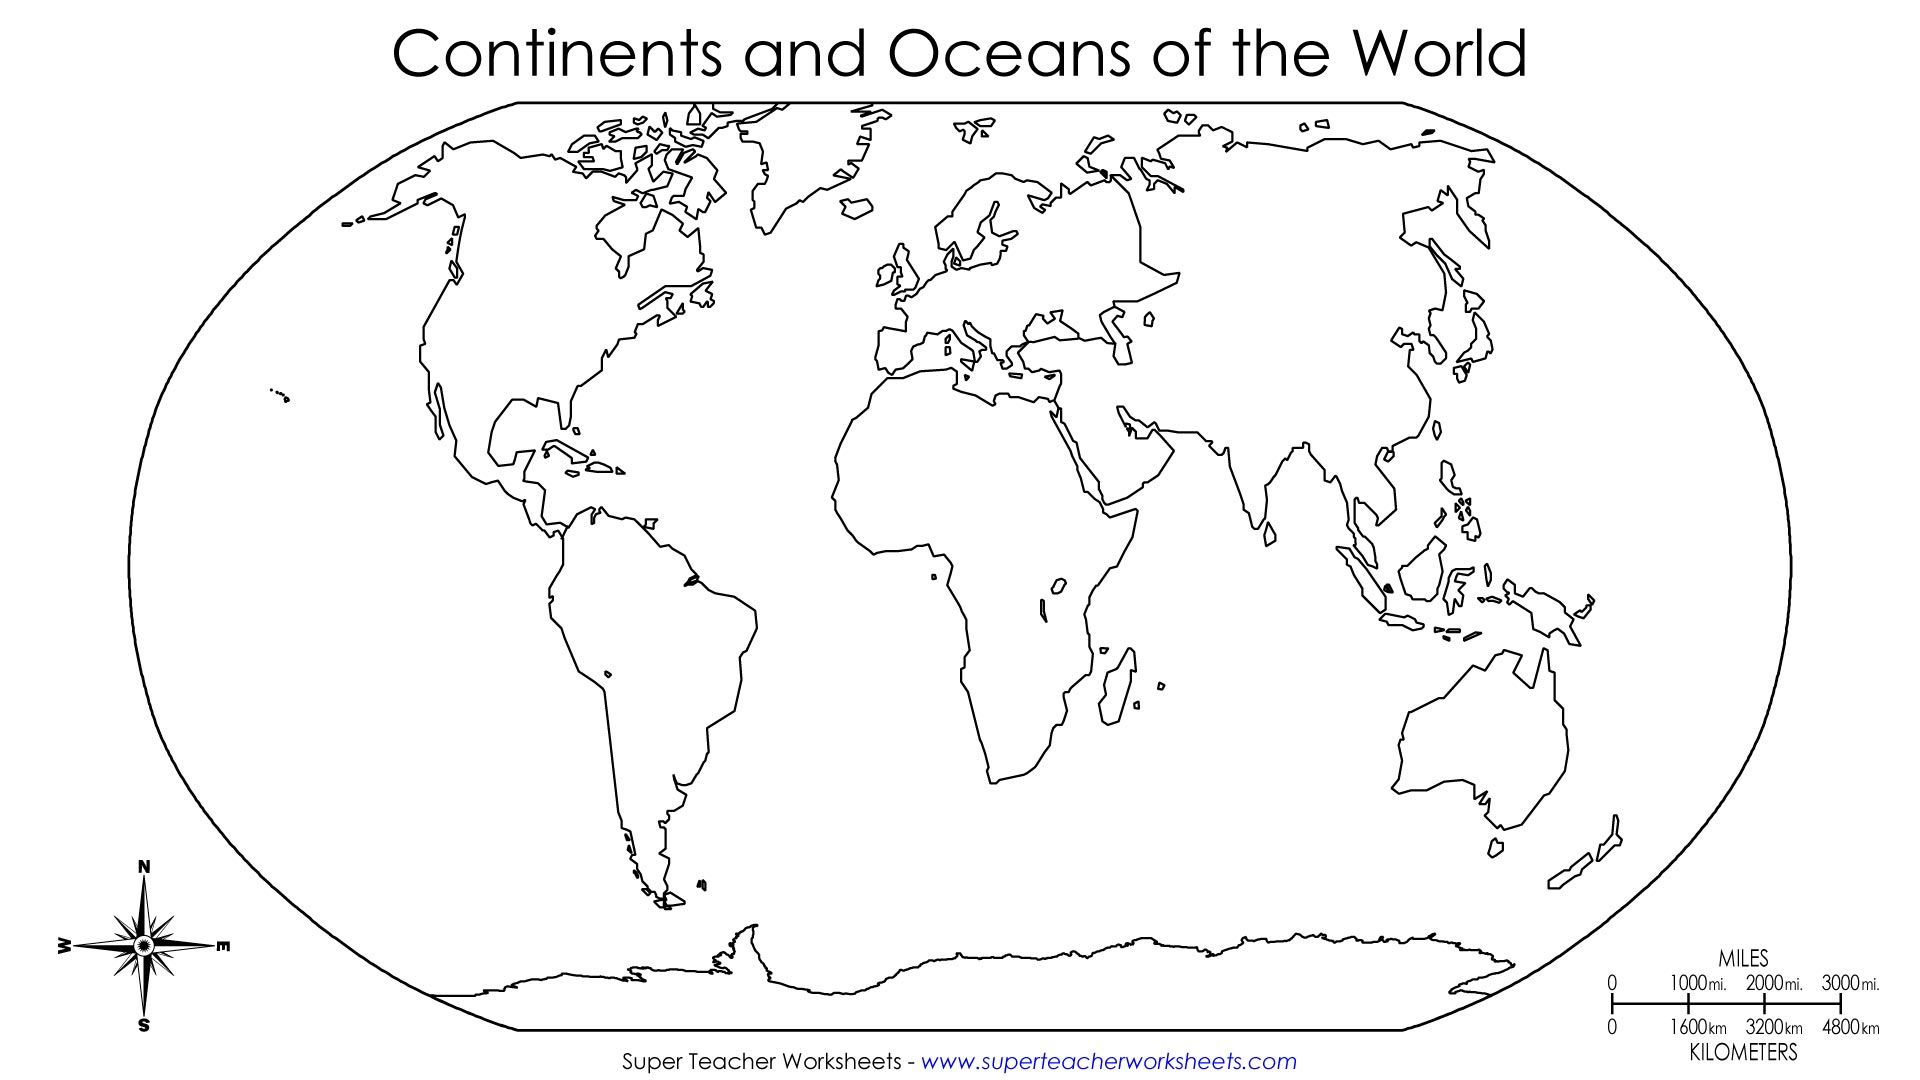 1920x1080 Continents Of The World Worksheets This Basic World Map Shows